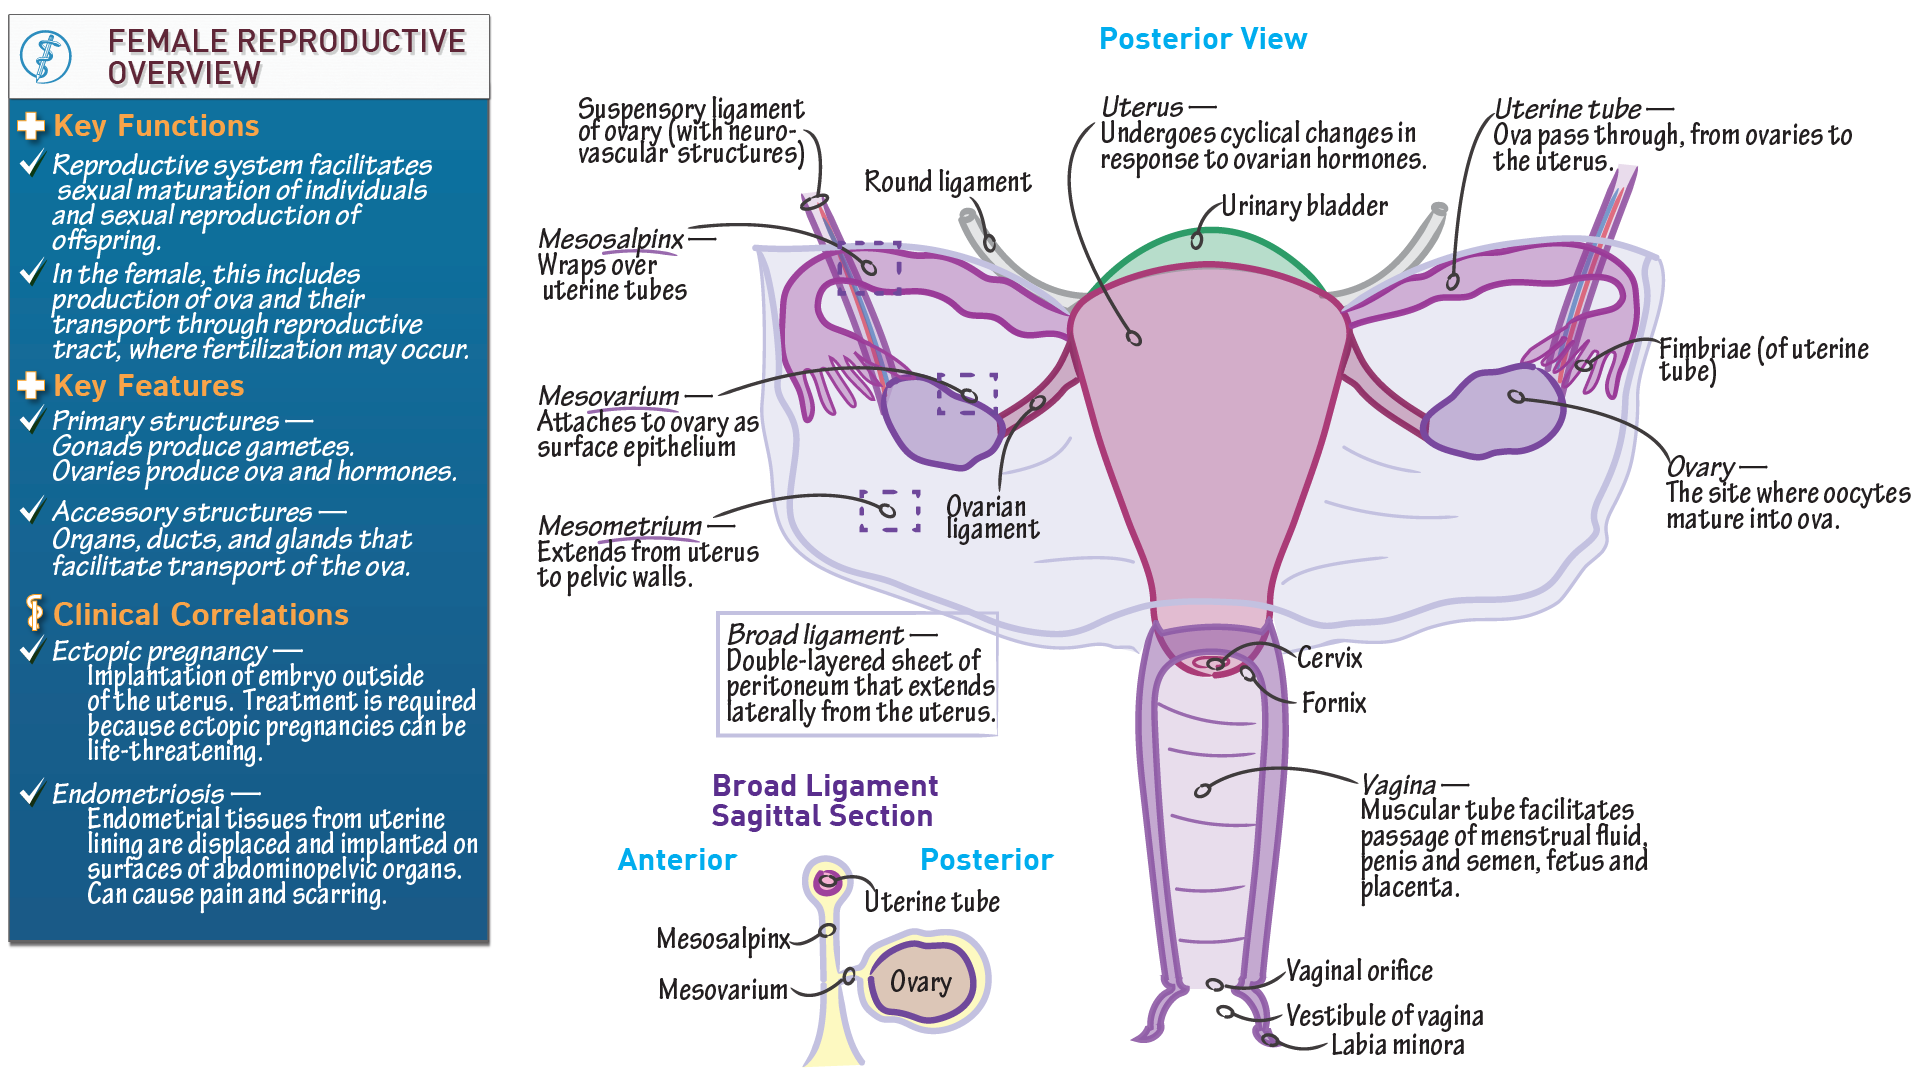 Ap biology overview of the female reproductive system draw it to ap biology overview of the female reproductive system draw it to know it ccuart Images